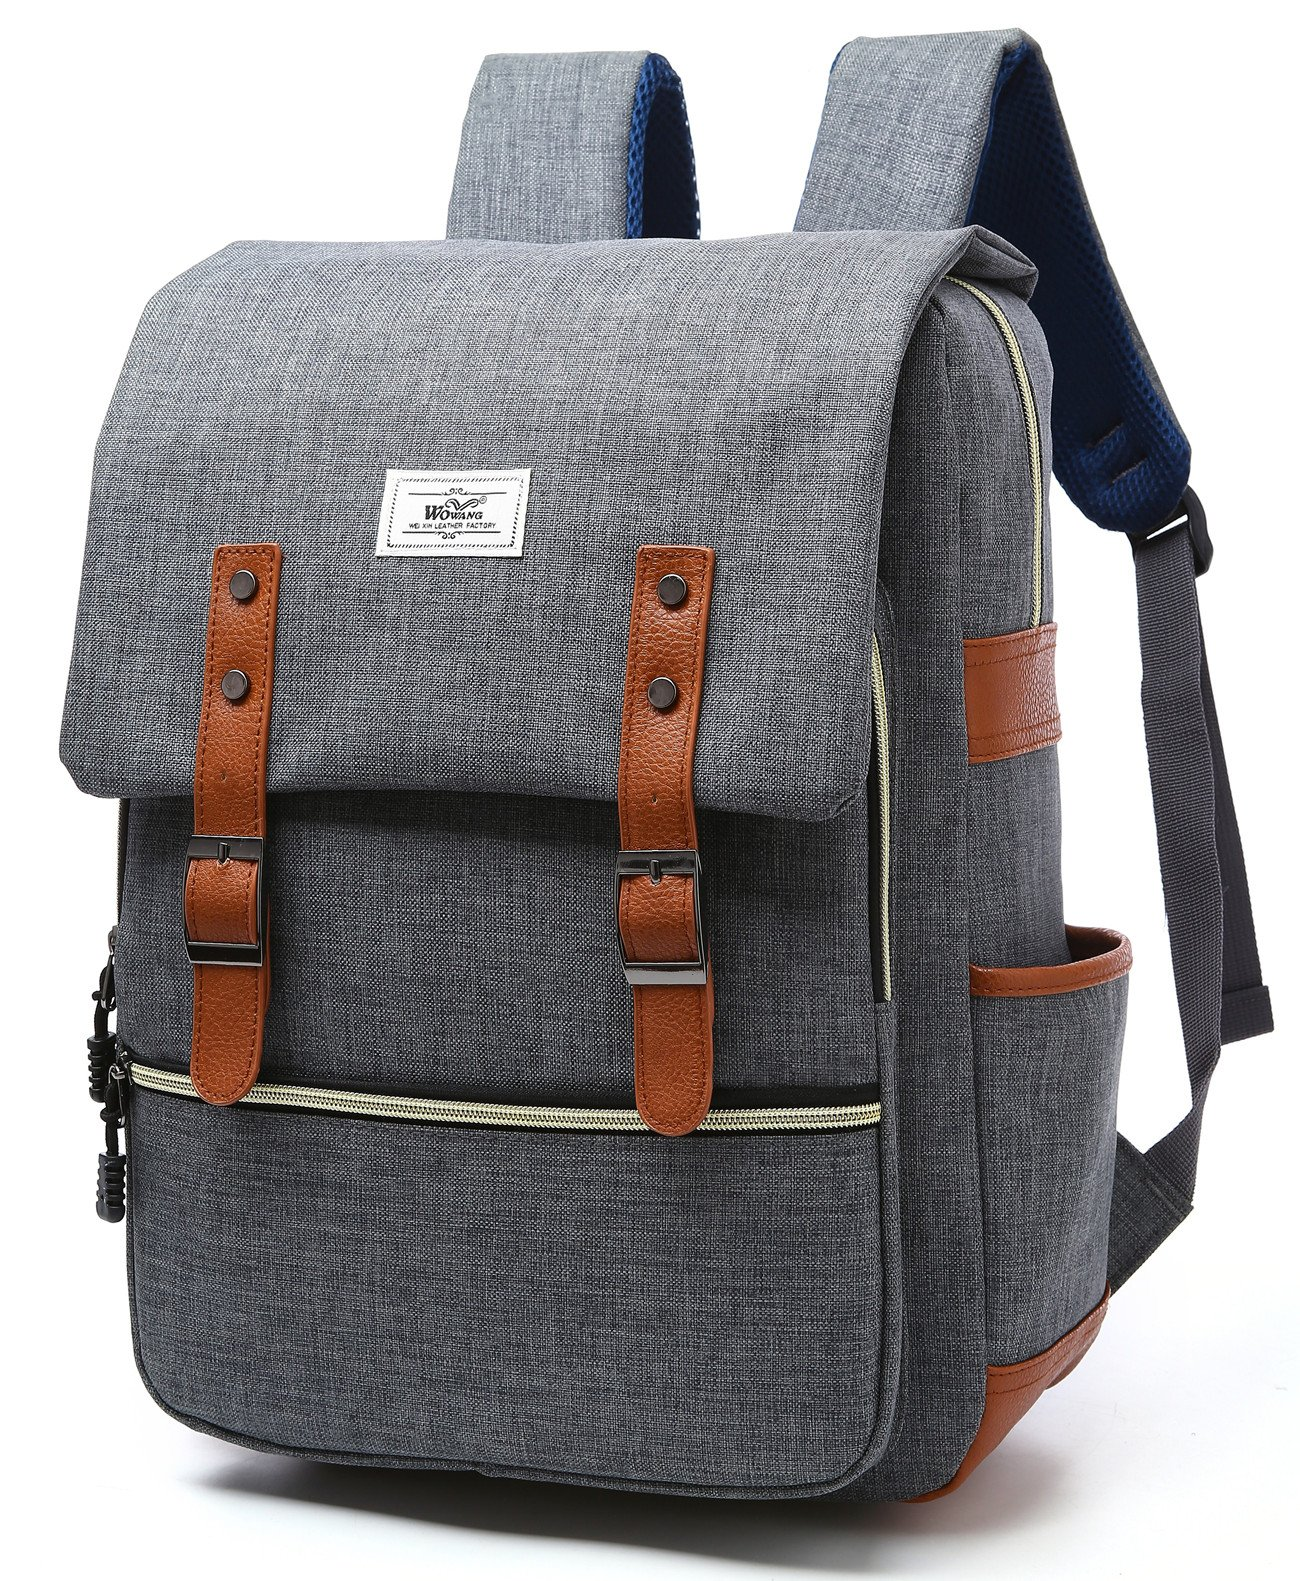 Vintage Travel/Business Laptop Backpack College School Student Bookbag For Boys Girls Men & Women, Water Resistant Casual Daypacks Outdoor Sports Bag Fits 15.6'' Laptop & Notebook,Grey